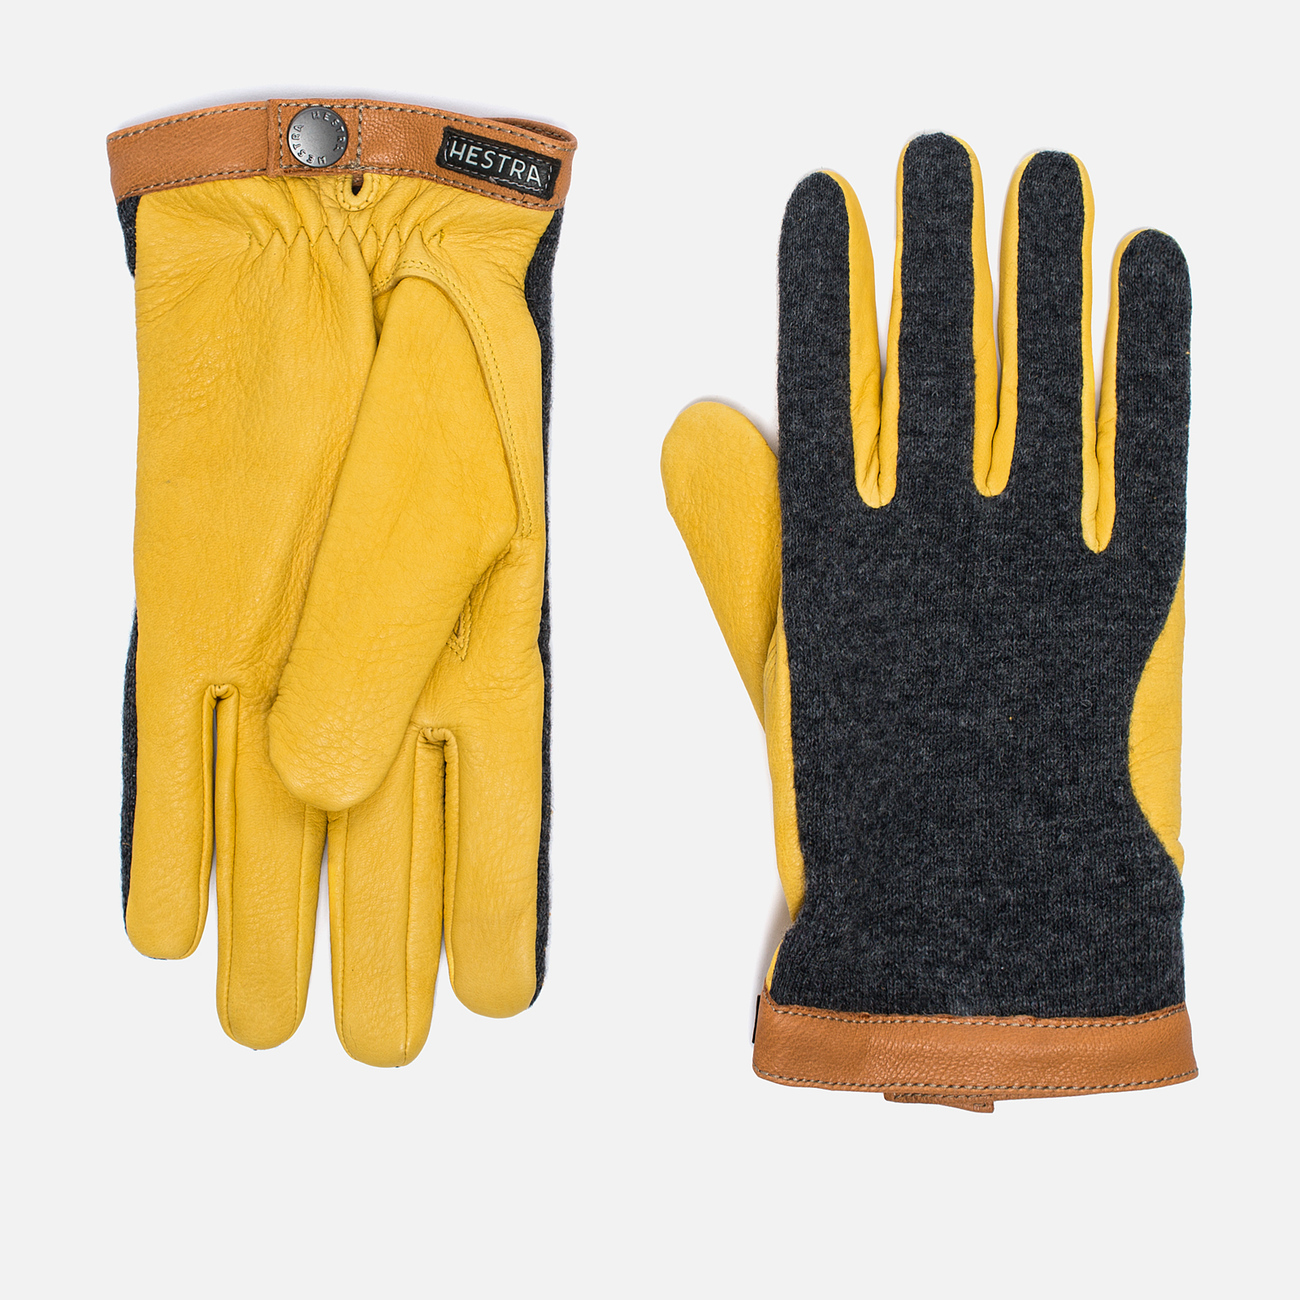 Мужские перчатки Hestra Deerskin Wool Tricot Grey/Yellow